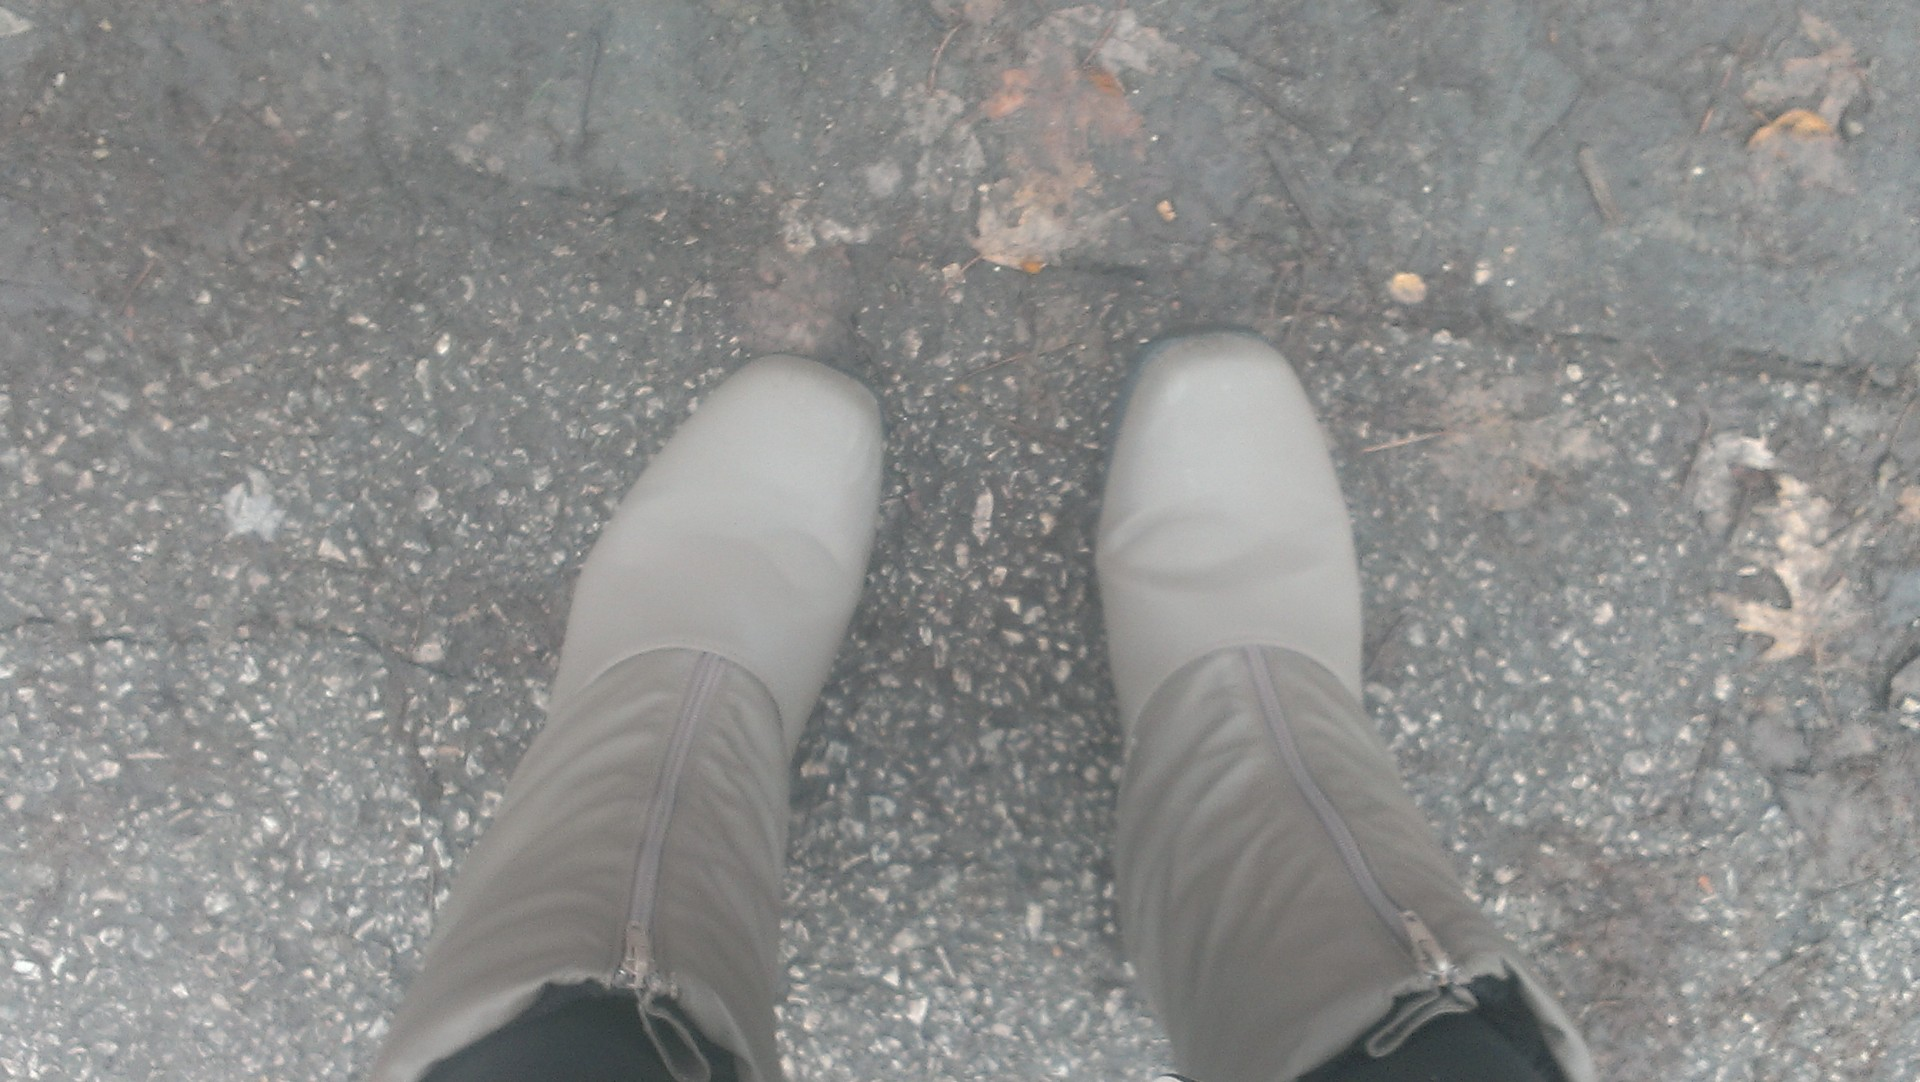 Weather-Proof Winter Boots